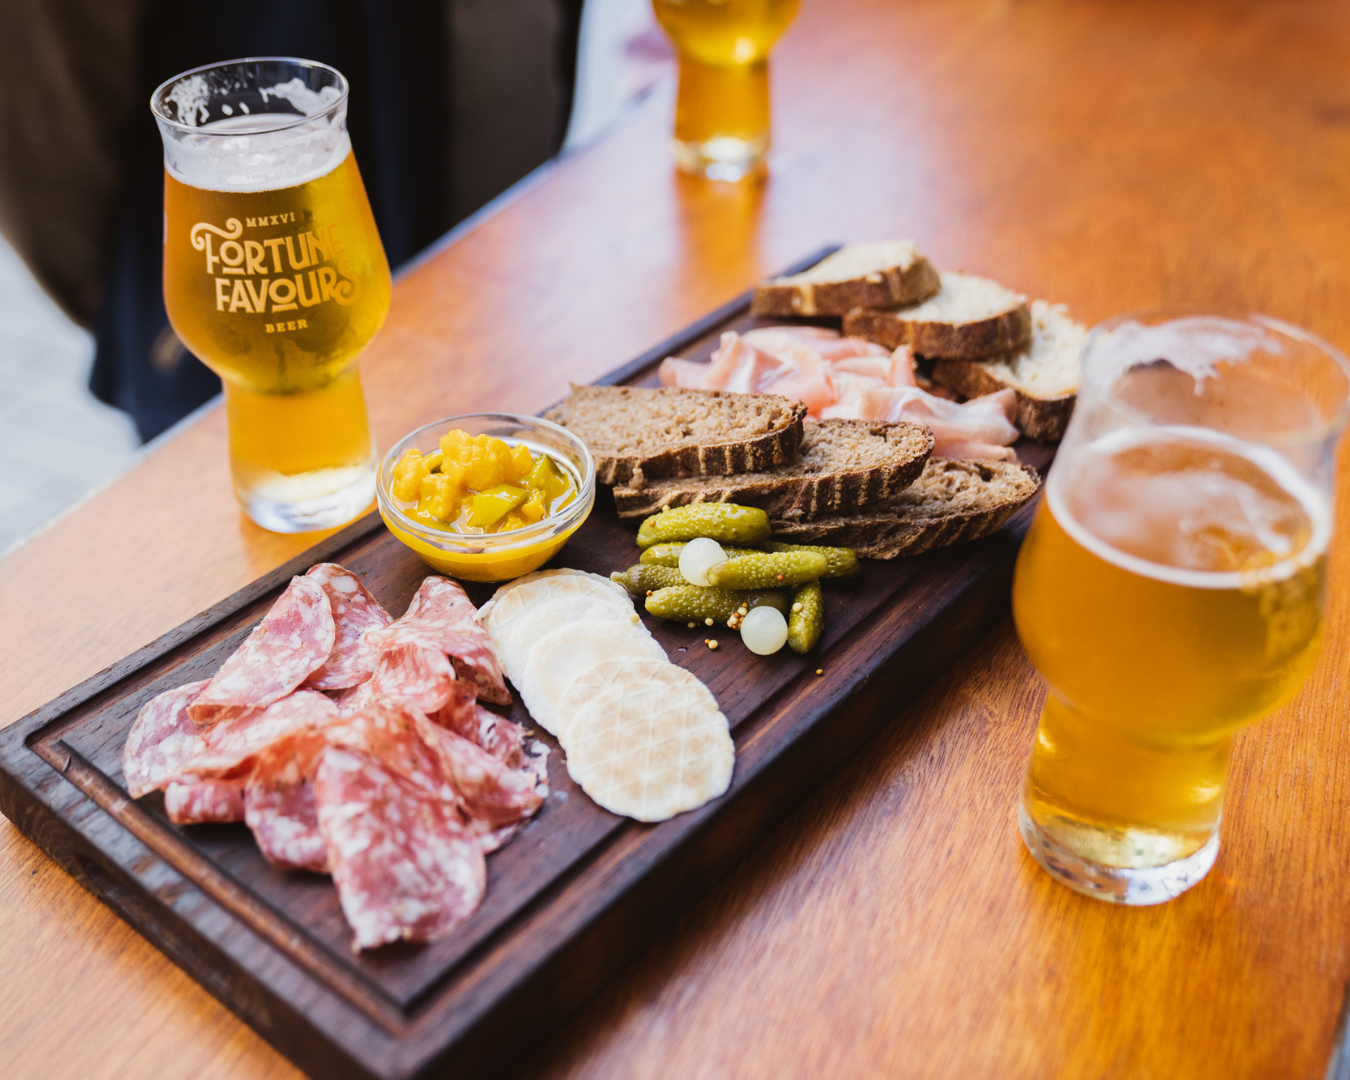 A beautiful graze board with cold cuts, bread and condiments alongside pints of fortune favour beers